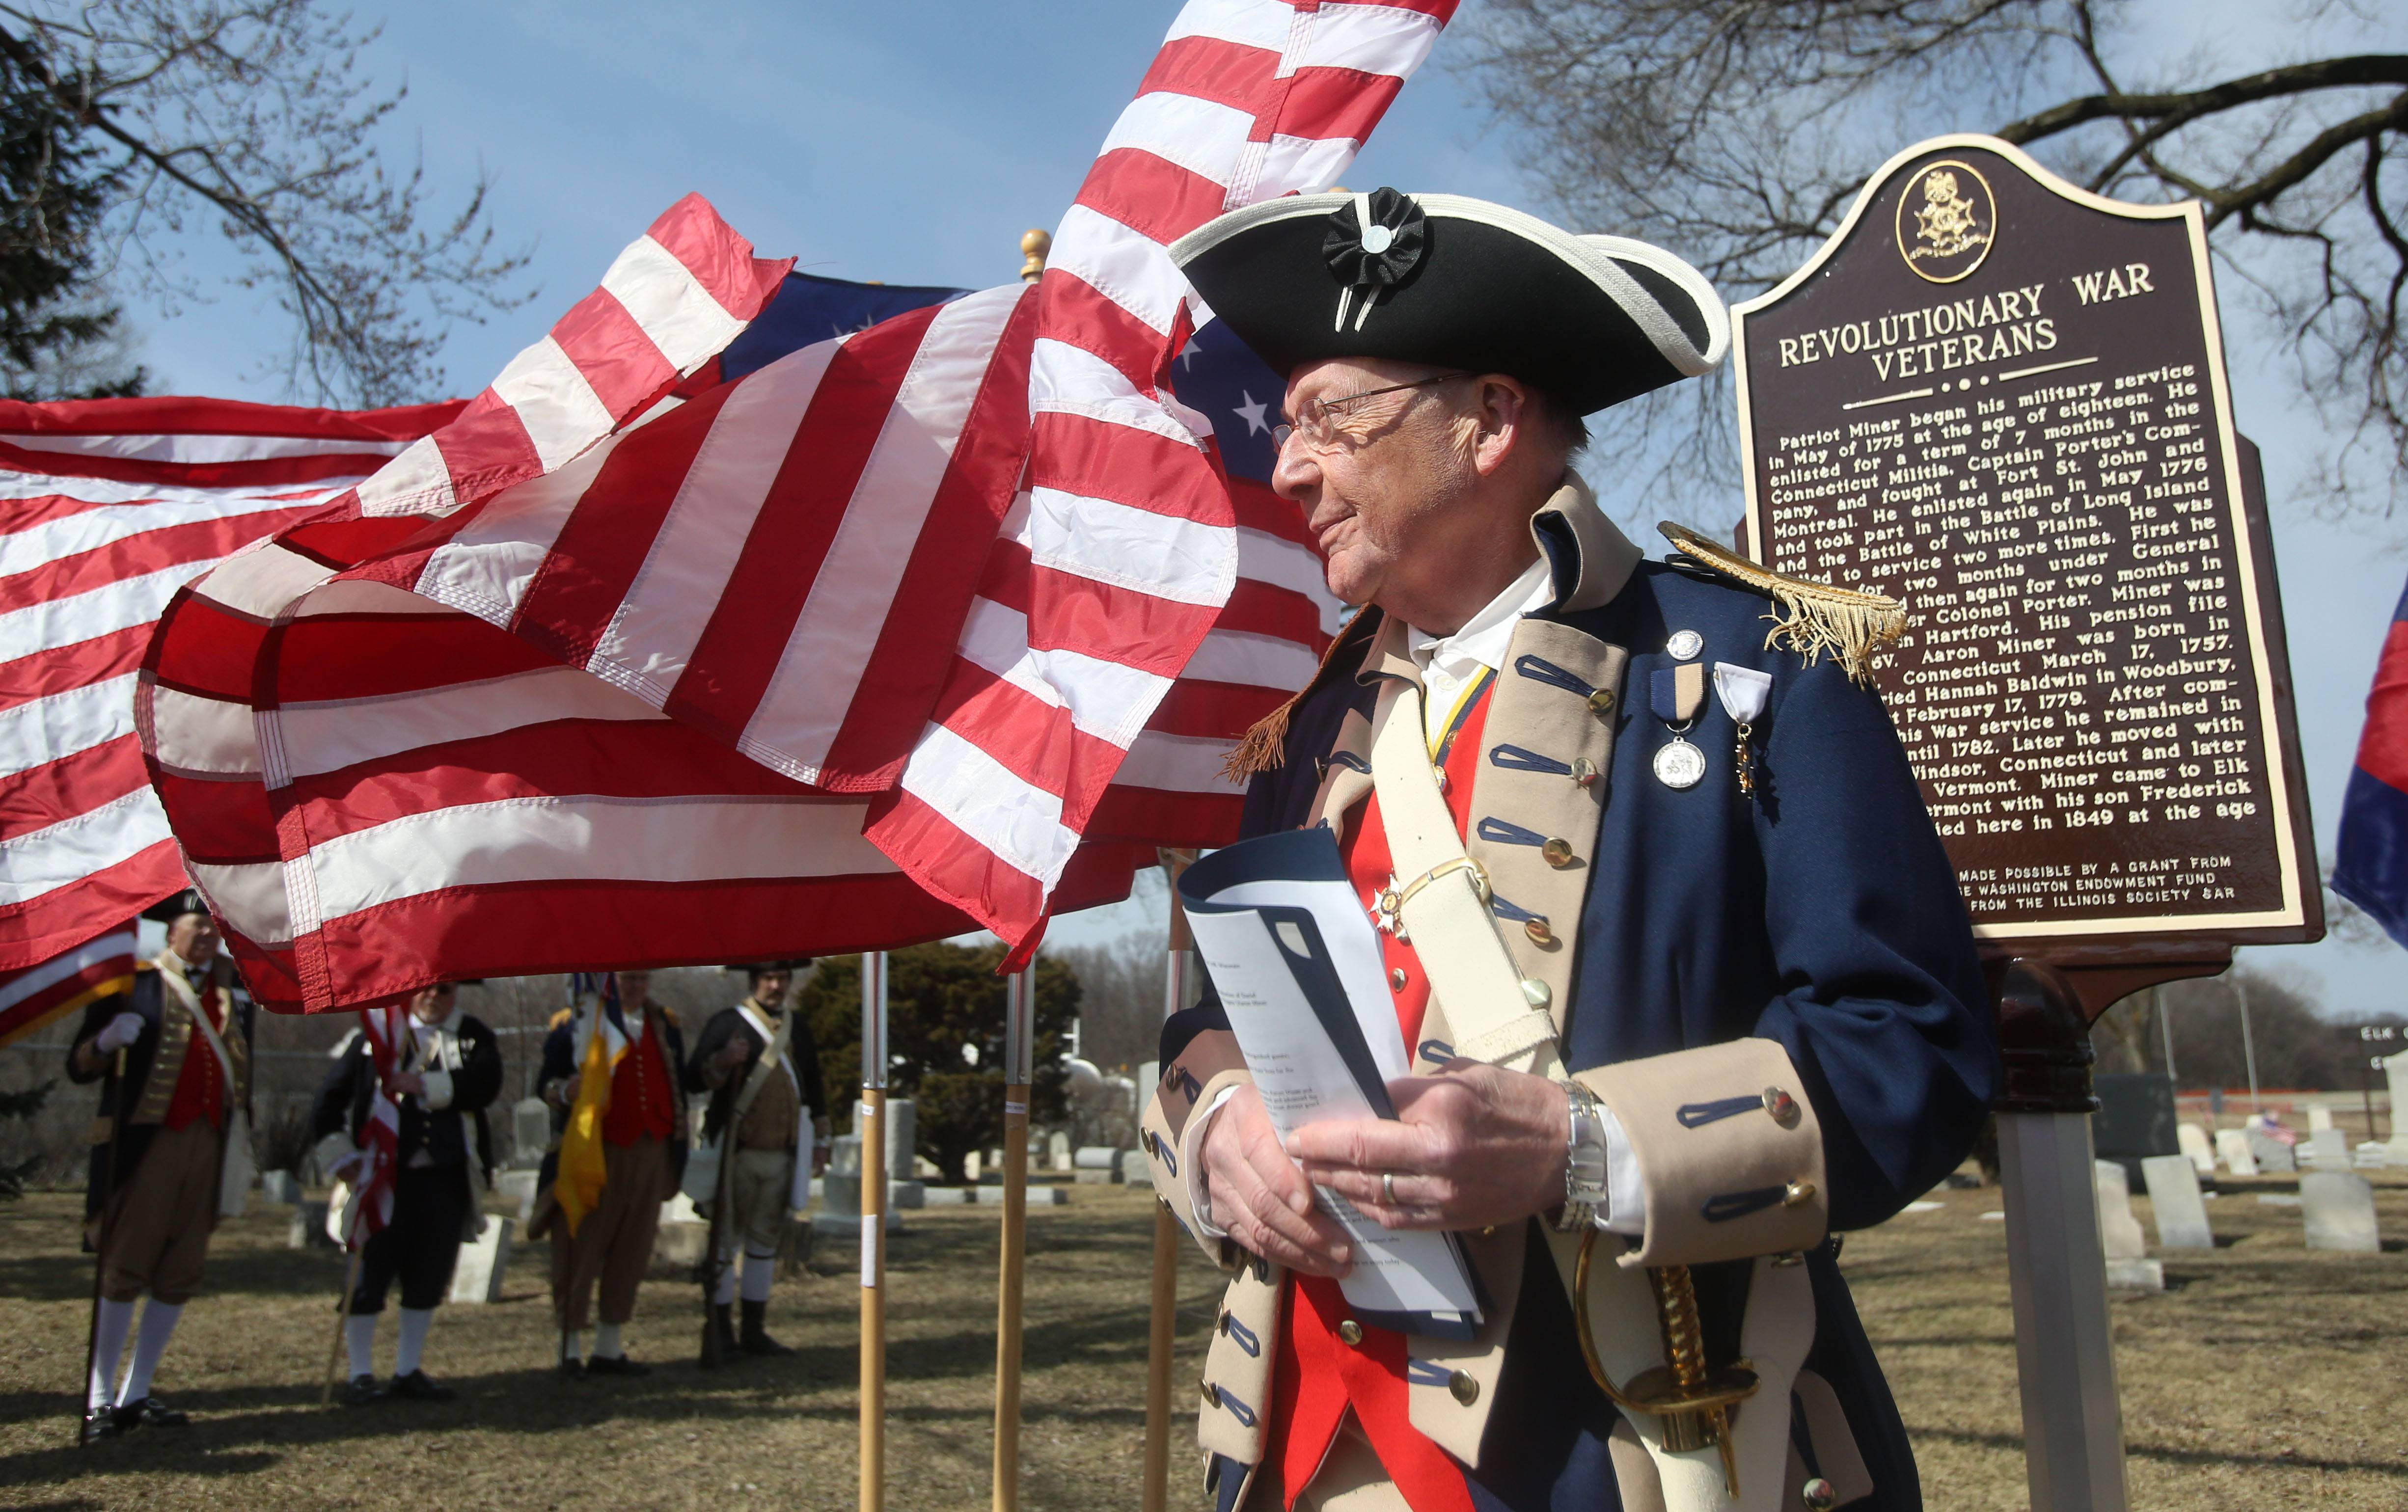 Franz Herder, chairman of the Illinois Society Sons of the American Revolution's Cemetery Marker Program, speaks during a ceremony Sunday dedicating historical markers for two Revolutionary War figures buried at Elk Grove Cemetery.